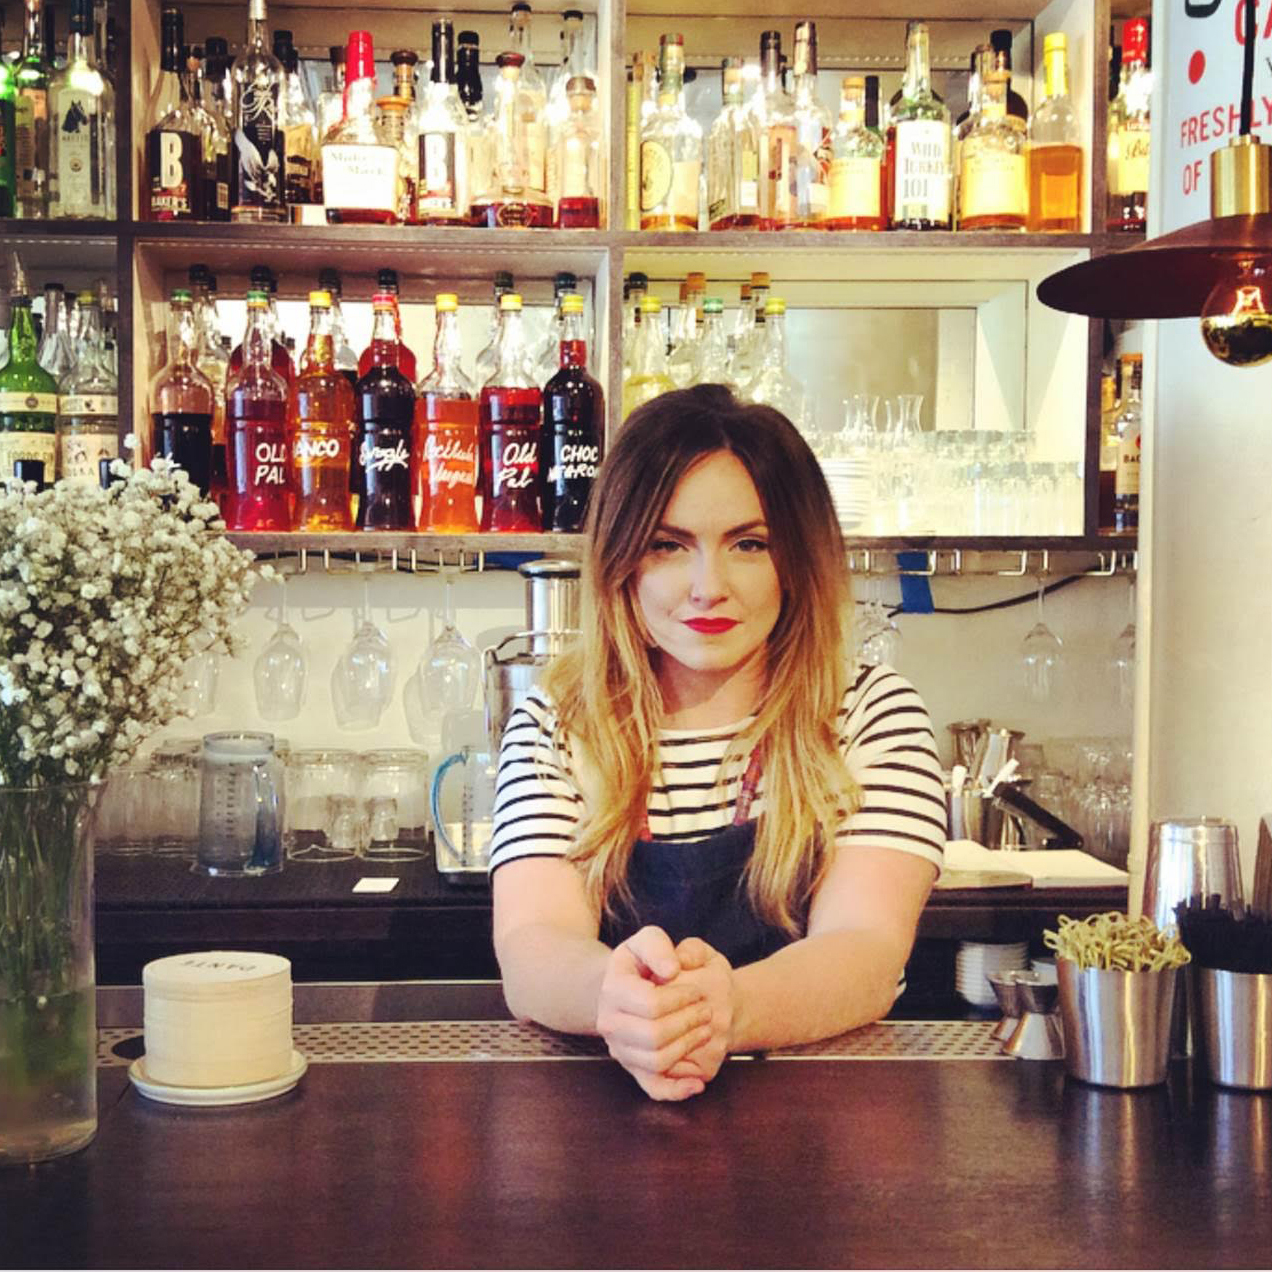 Meet the Genius Mixologist Behind Cocktails Inspired by Salads